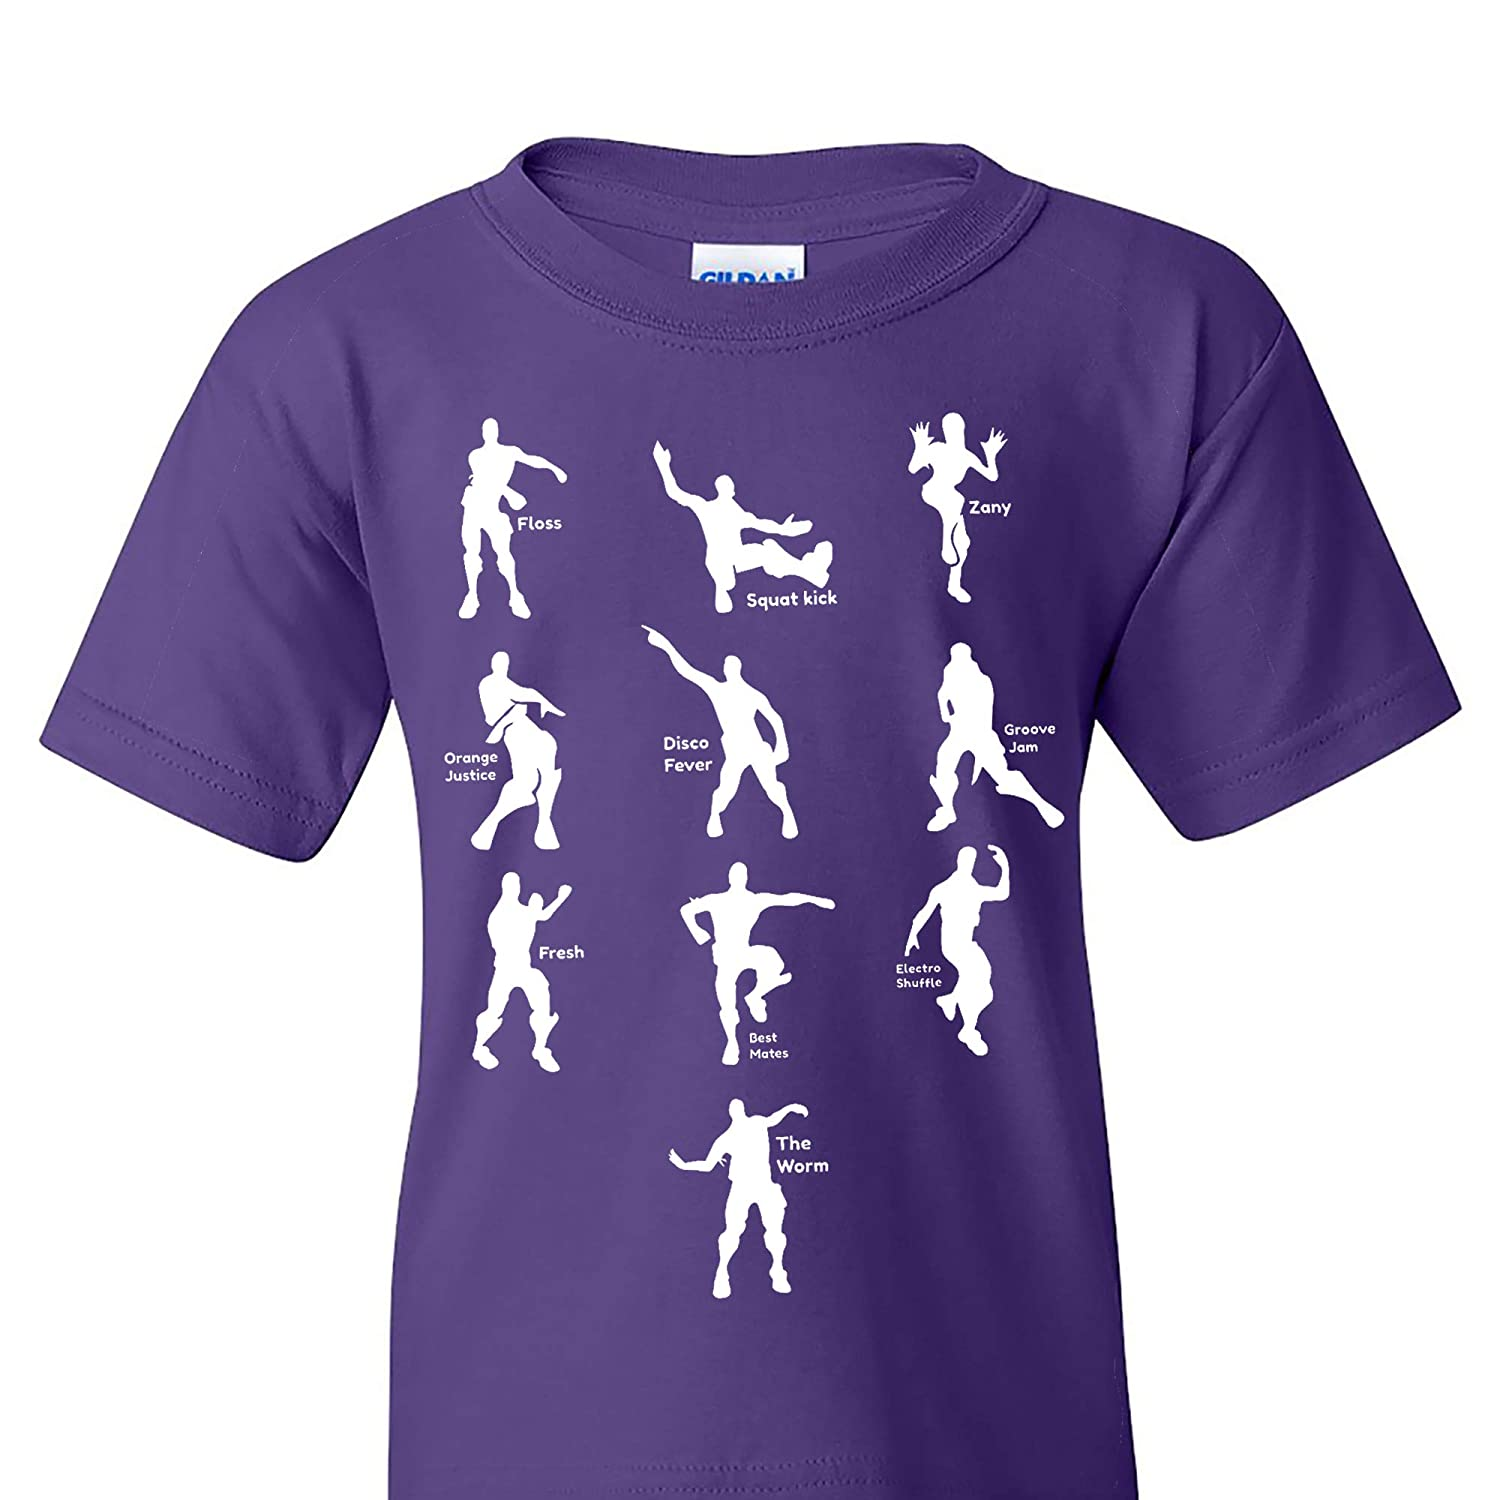 UGP Campus Apparel Emote Dances - Funny Gaming Parody Video Game Youth T Shirt 20180810B-015